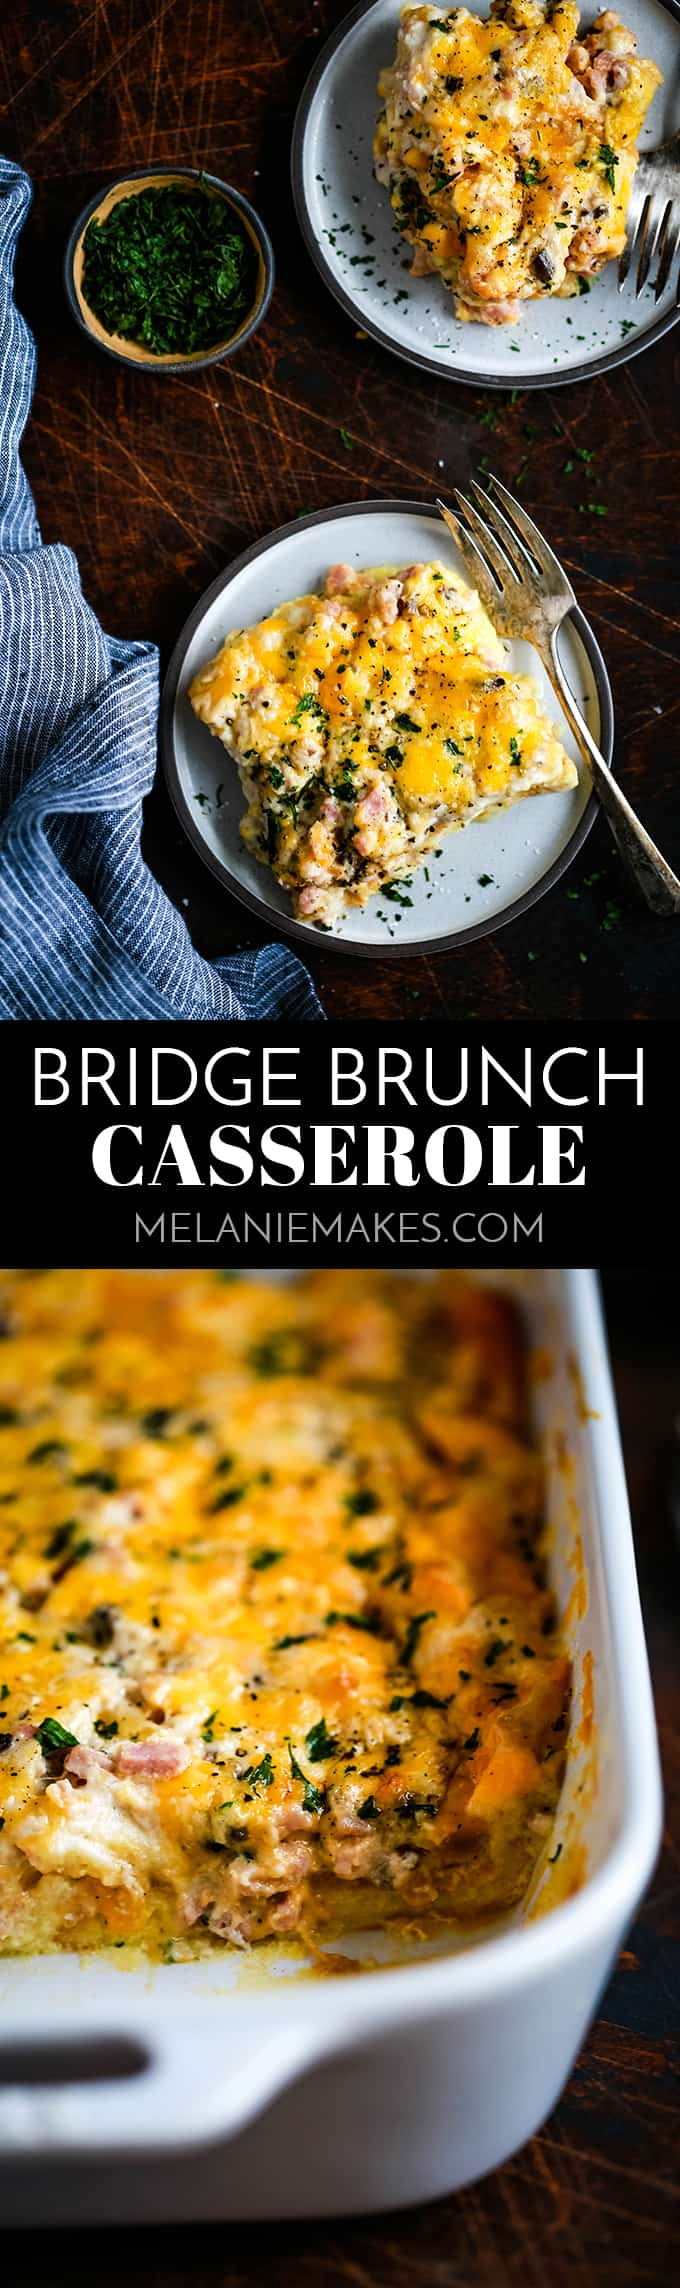 Prepped the night before in only 10 minutes, this cheesy, melty, ham studded Bridge Brunch Casserole is the perfect choice for Easter or any other morning. #breakfast #brunch #casserole #eggs #ham #easter #christmas